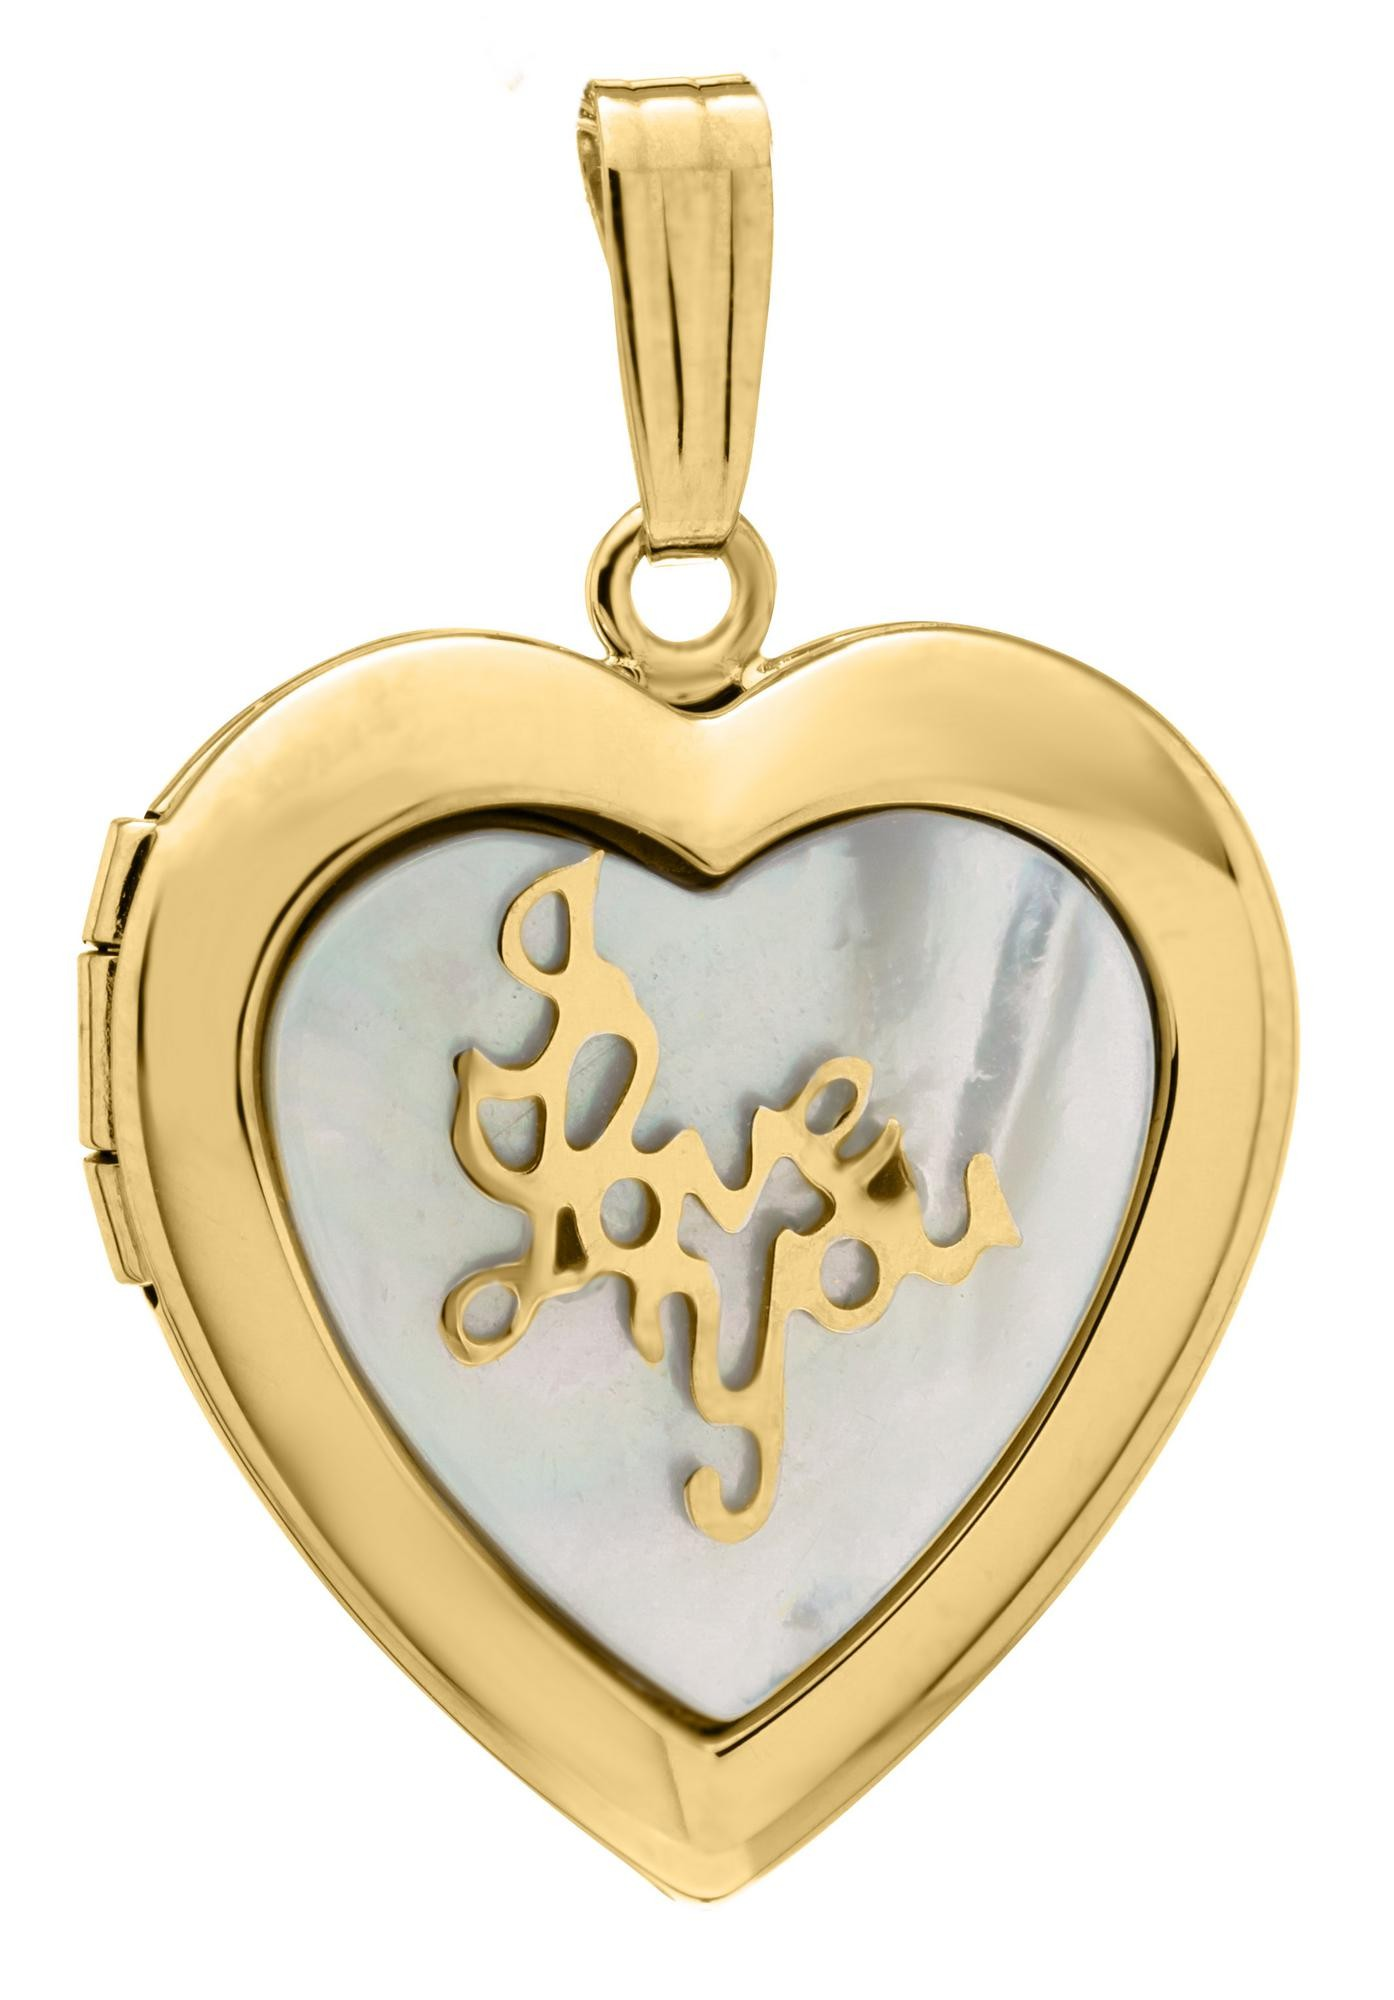 treasure finish cubic heart locket lockets image steel gold yellow zirconia